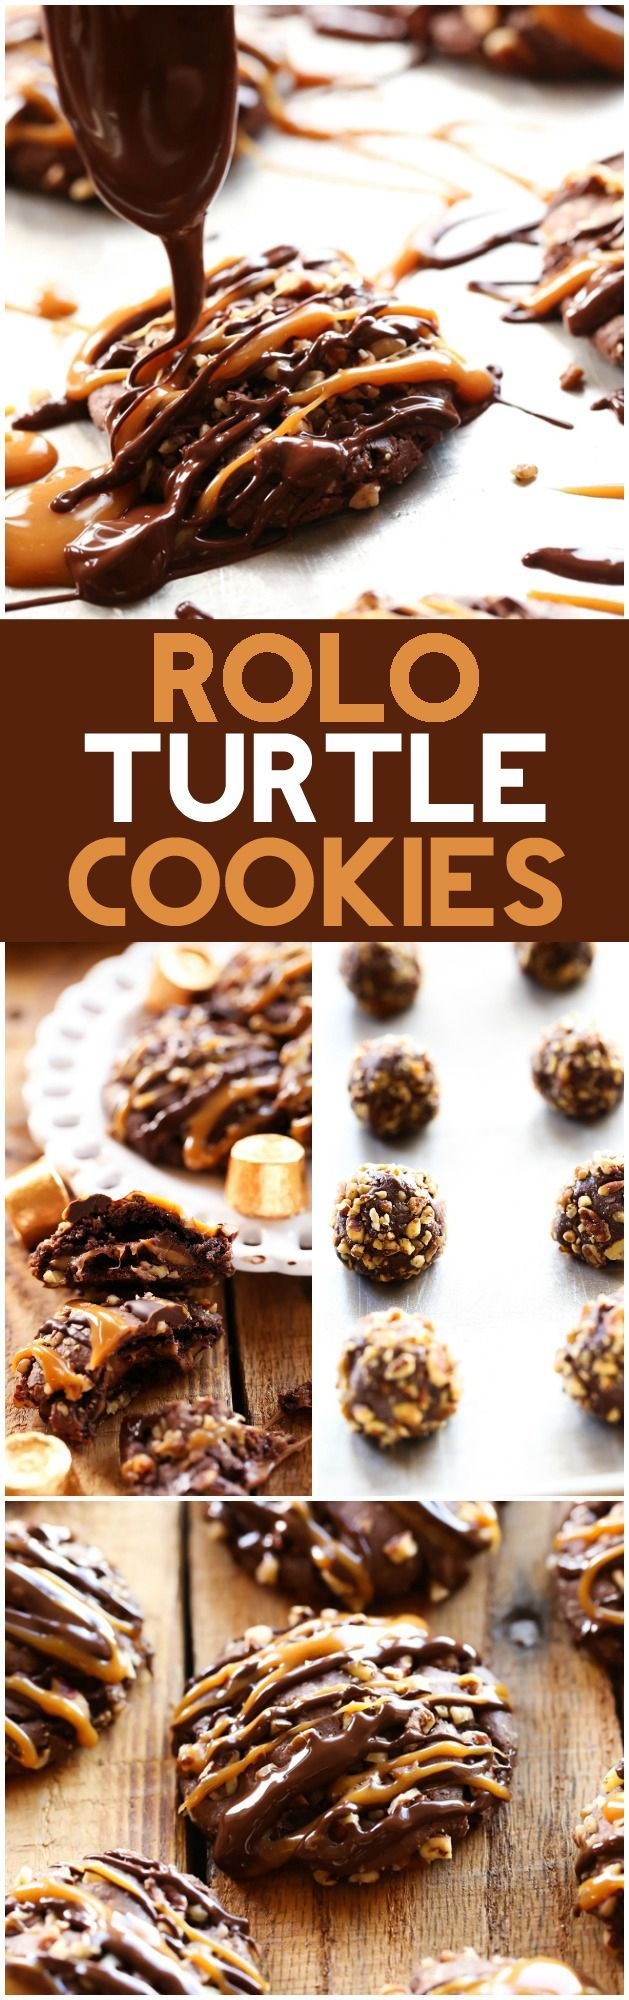 ROLO Turtle Cookies... These cookies are UNBELIEVABLY GOOD! They are ooey, gooey with a delicious crunch of pecans.